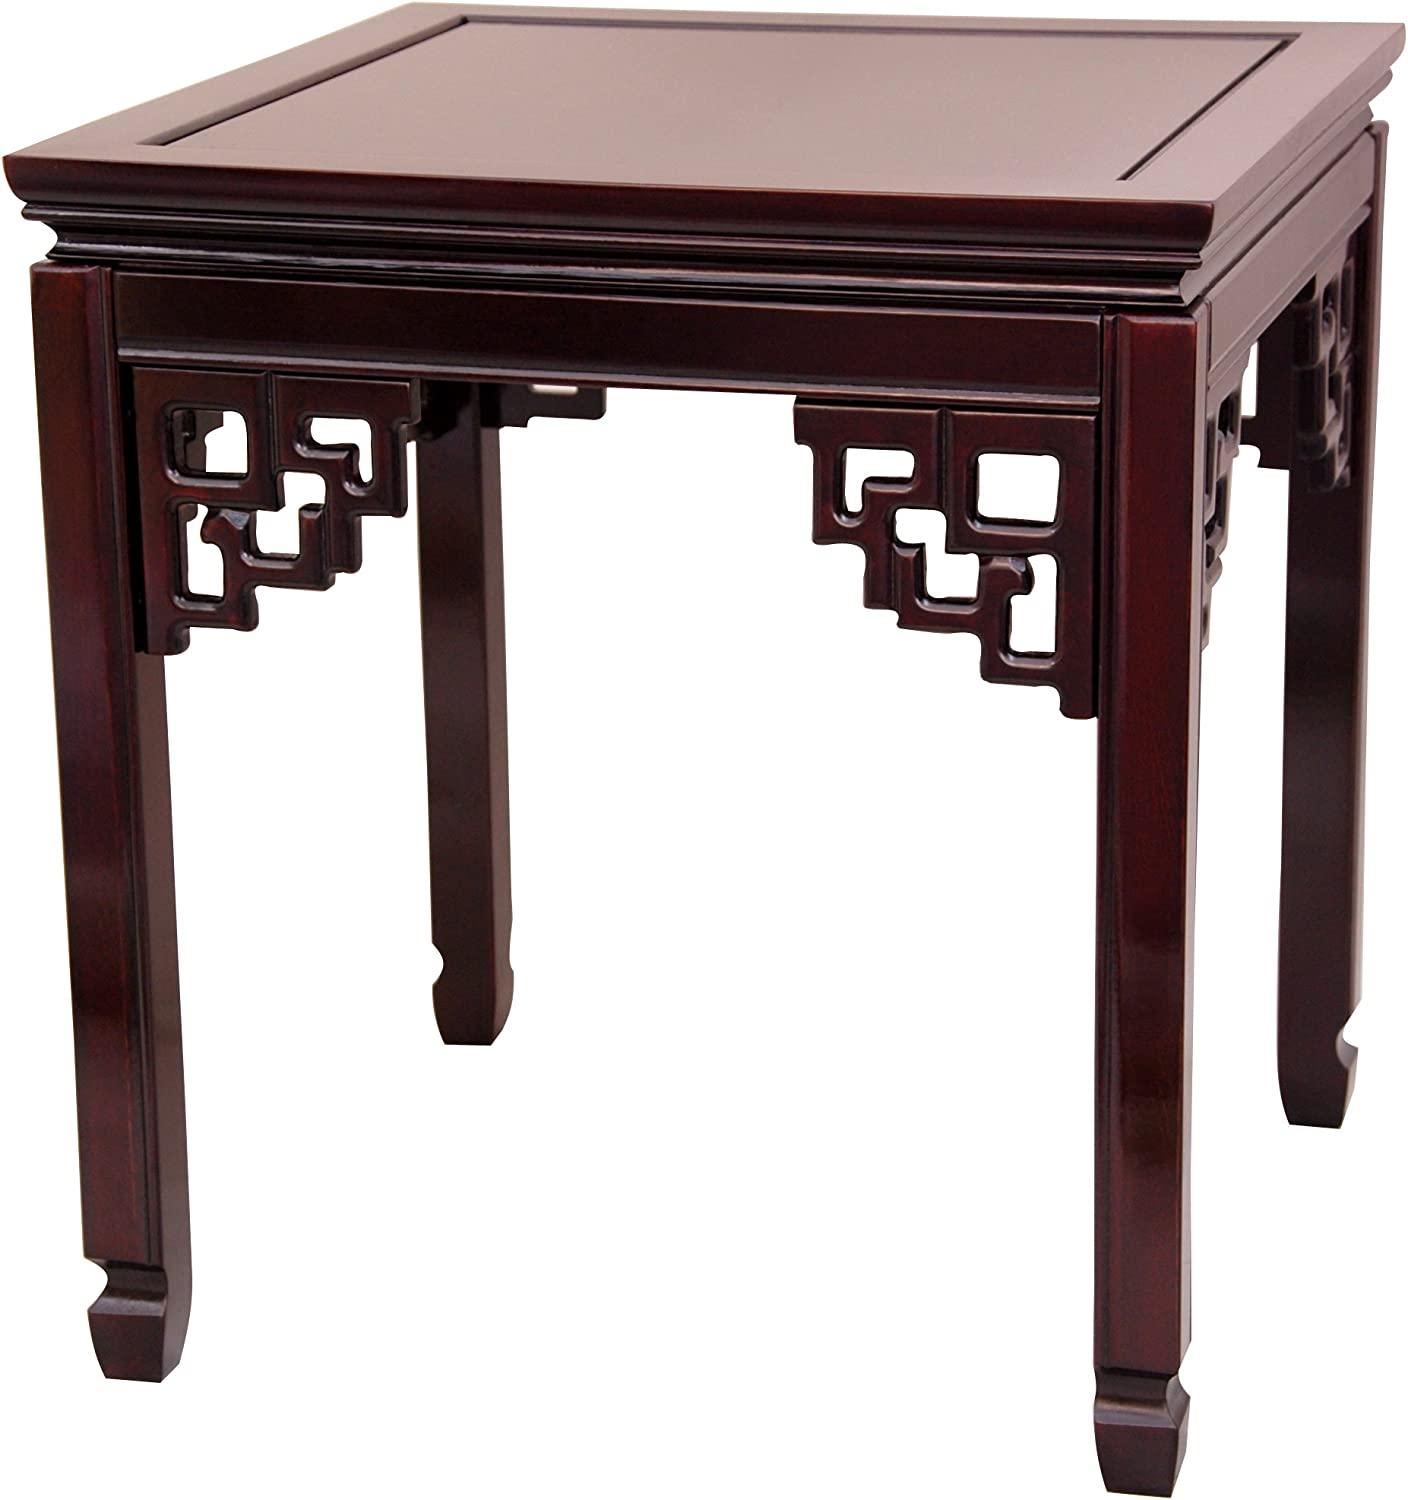 Oriental Furniture Rosewood Square Ming Table - Rosewood